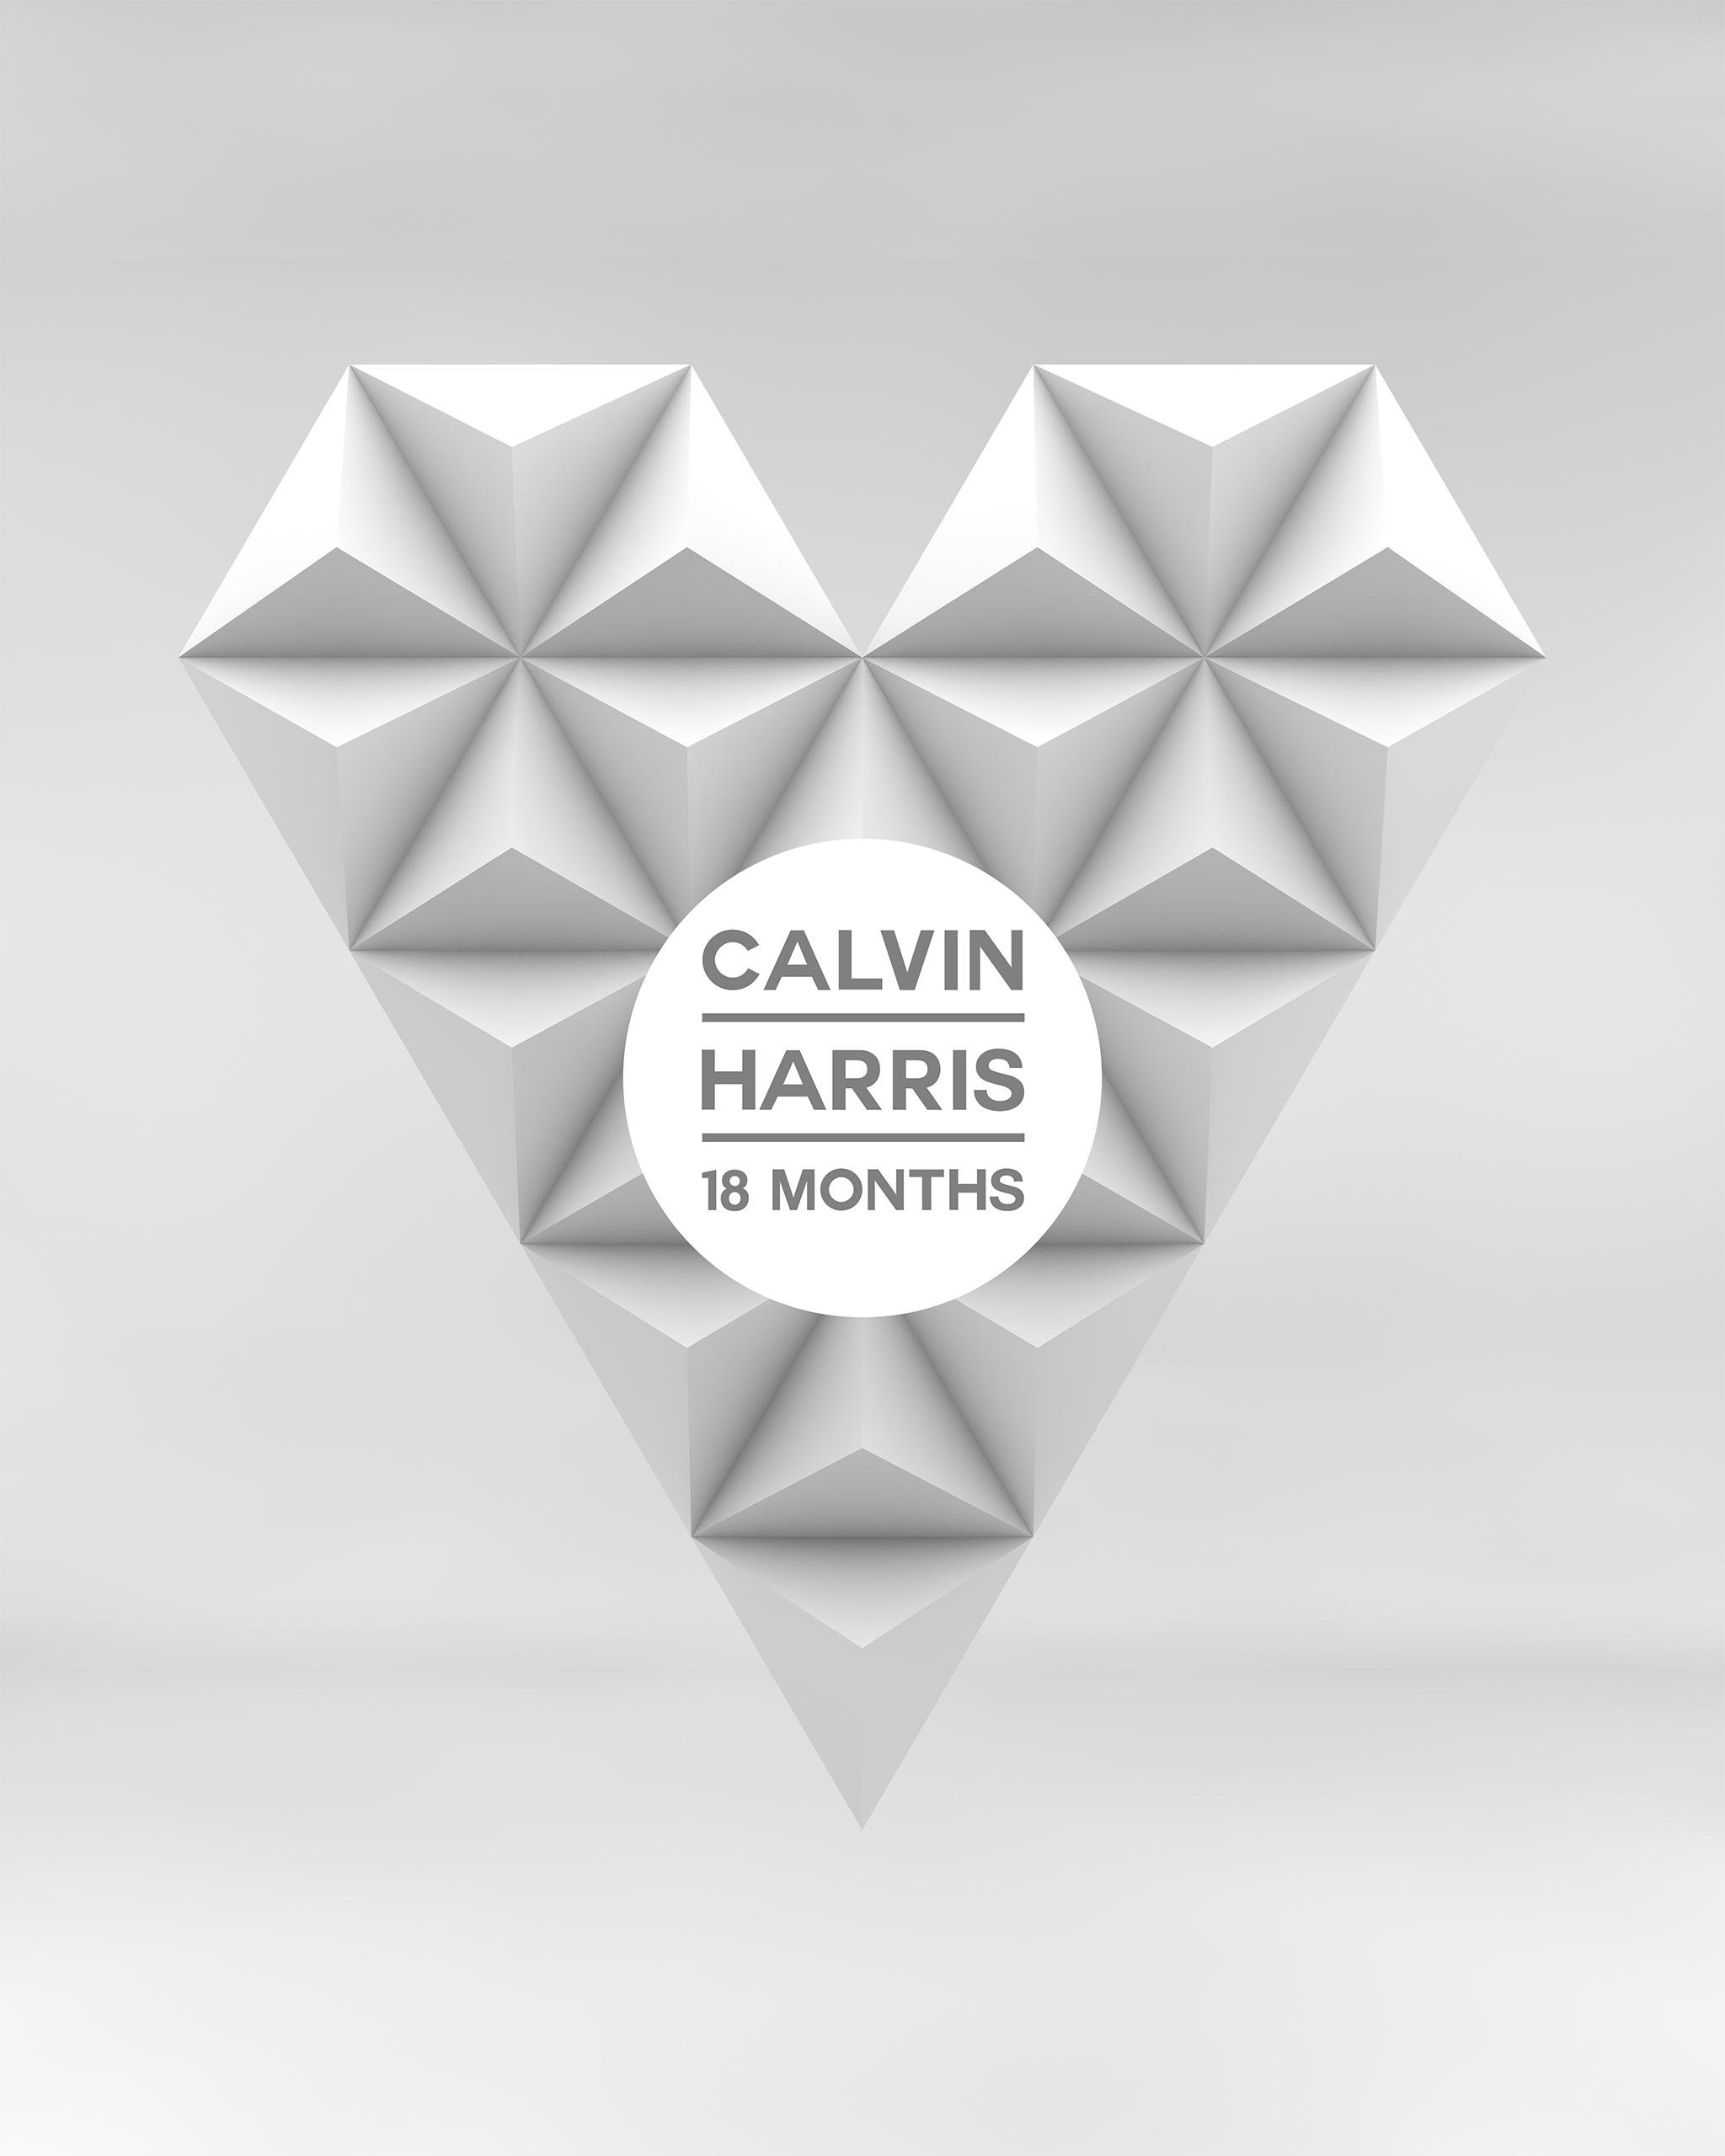 Calvin Harris - 18 Months // Updated 02-25 - image 12 - student project